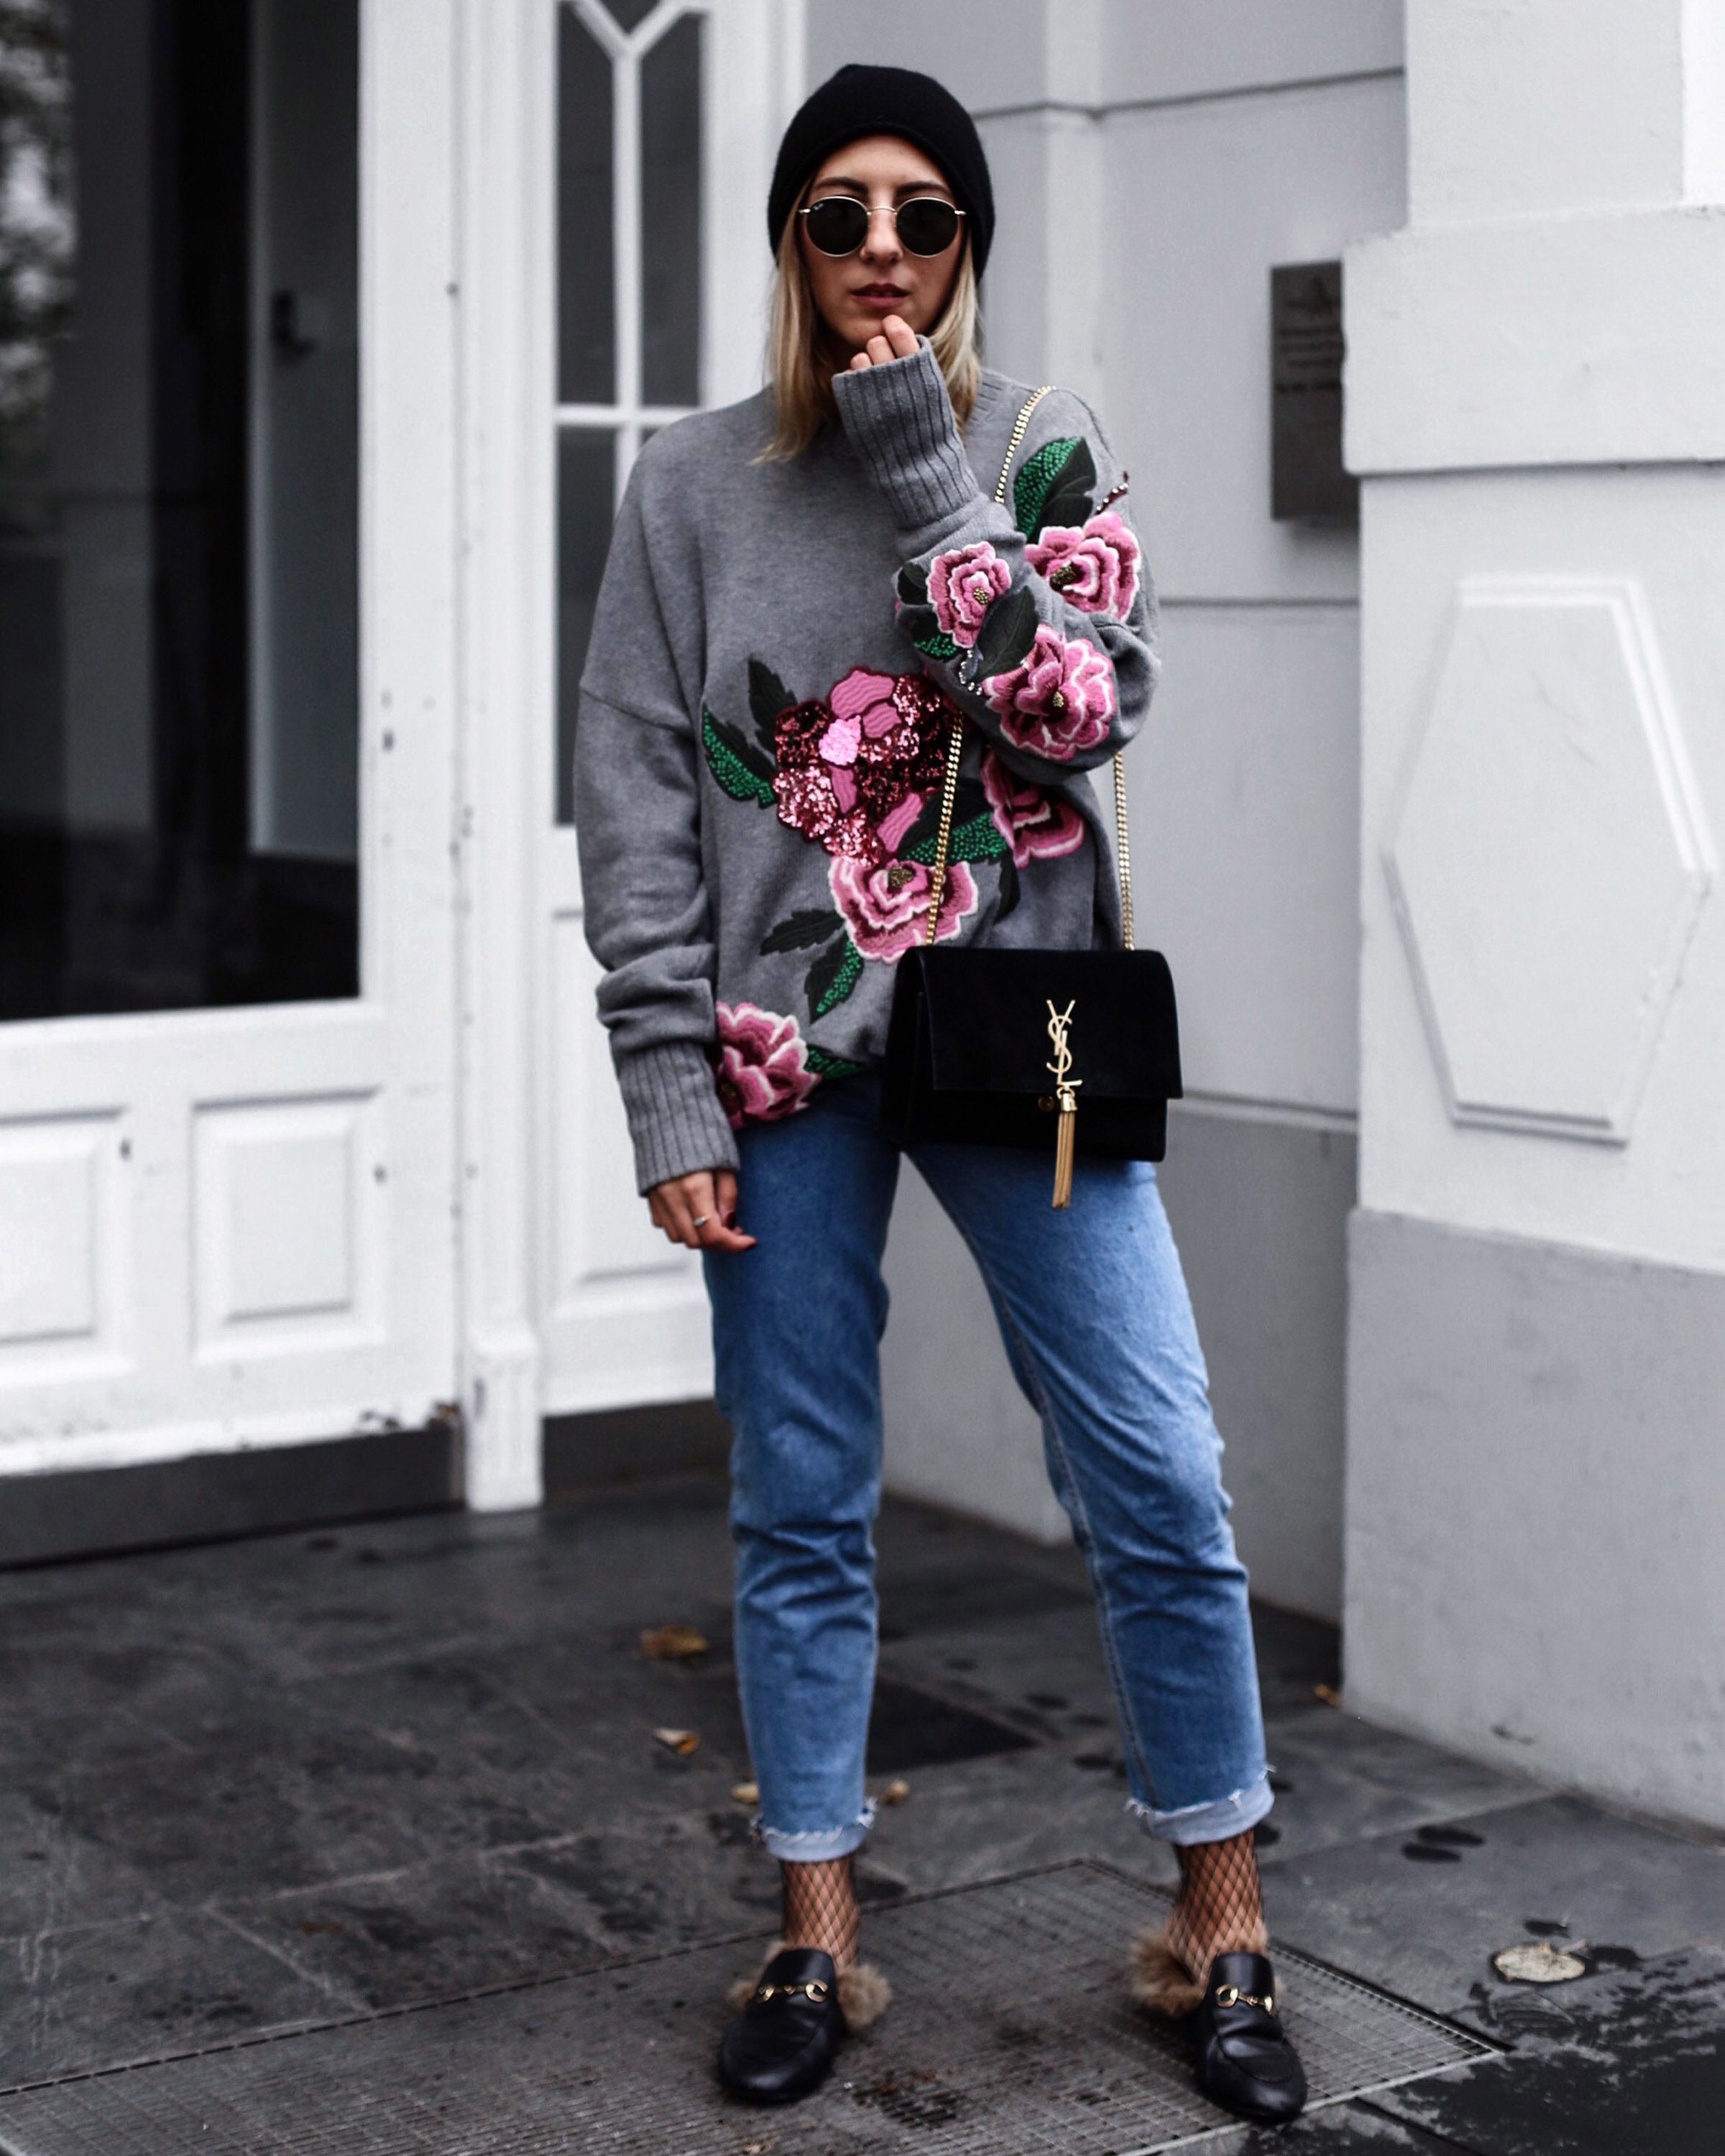 hm_trend_flower_knit